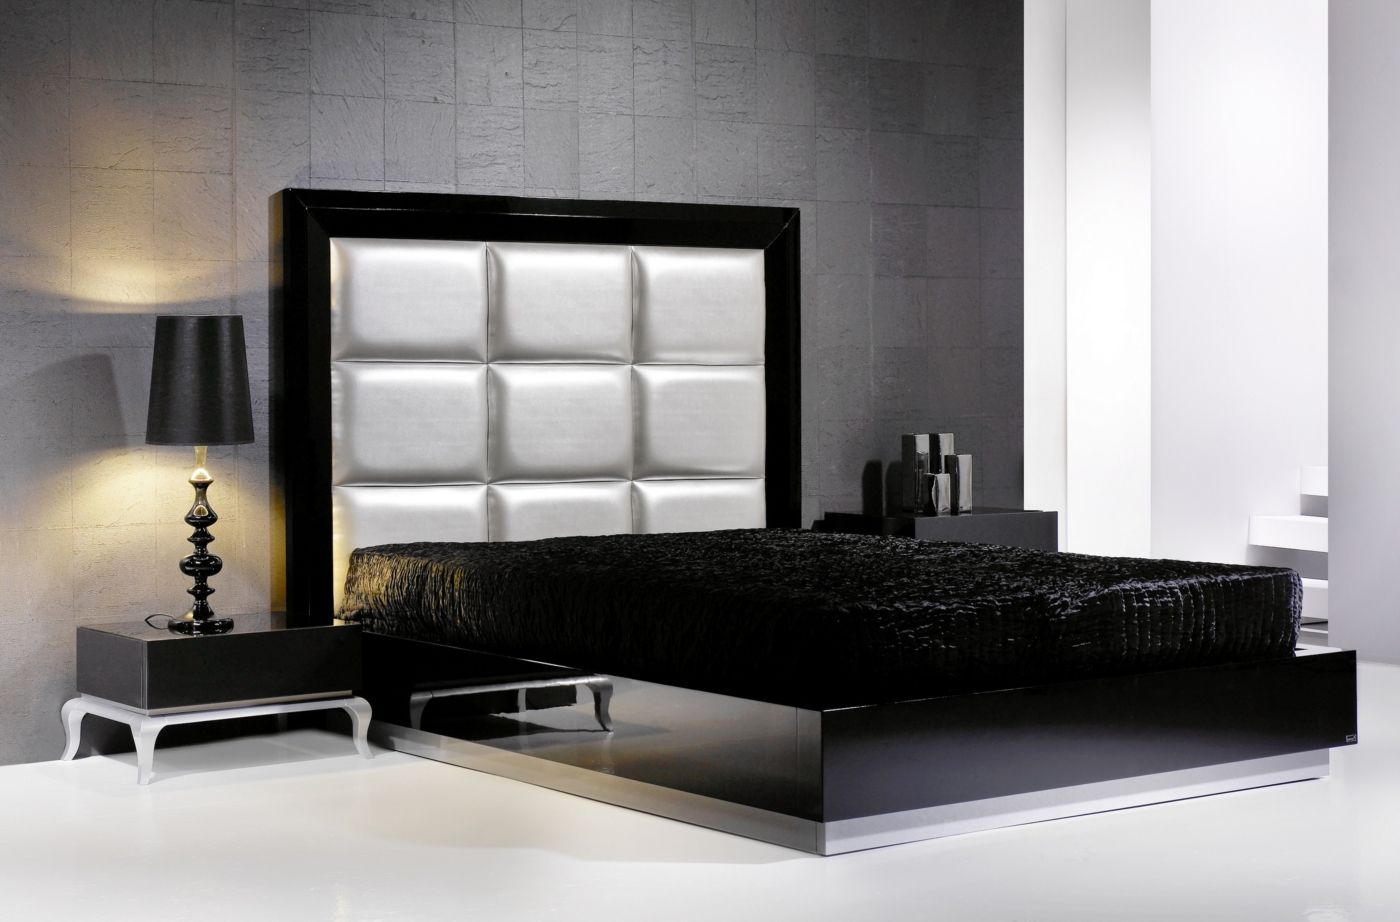 tall headboards  bedroom and living room image collections -  best images about headboards on pinterest metal accent table  bestimages about headboards on